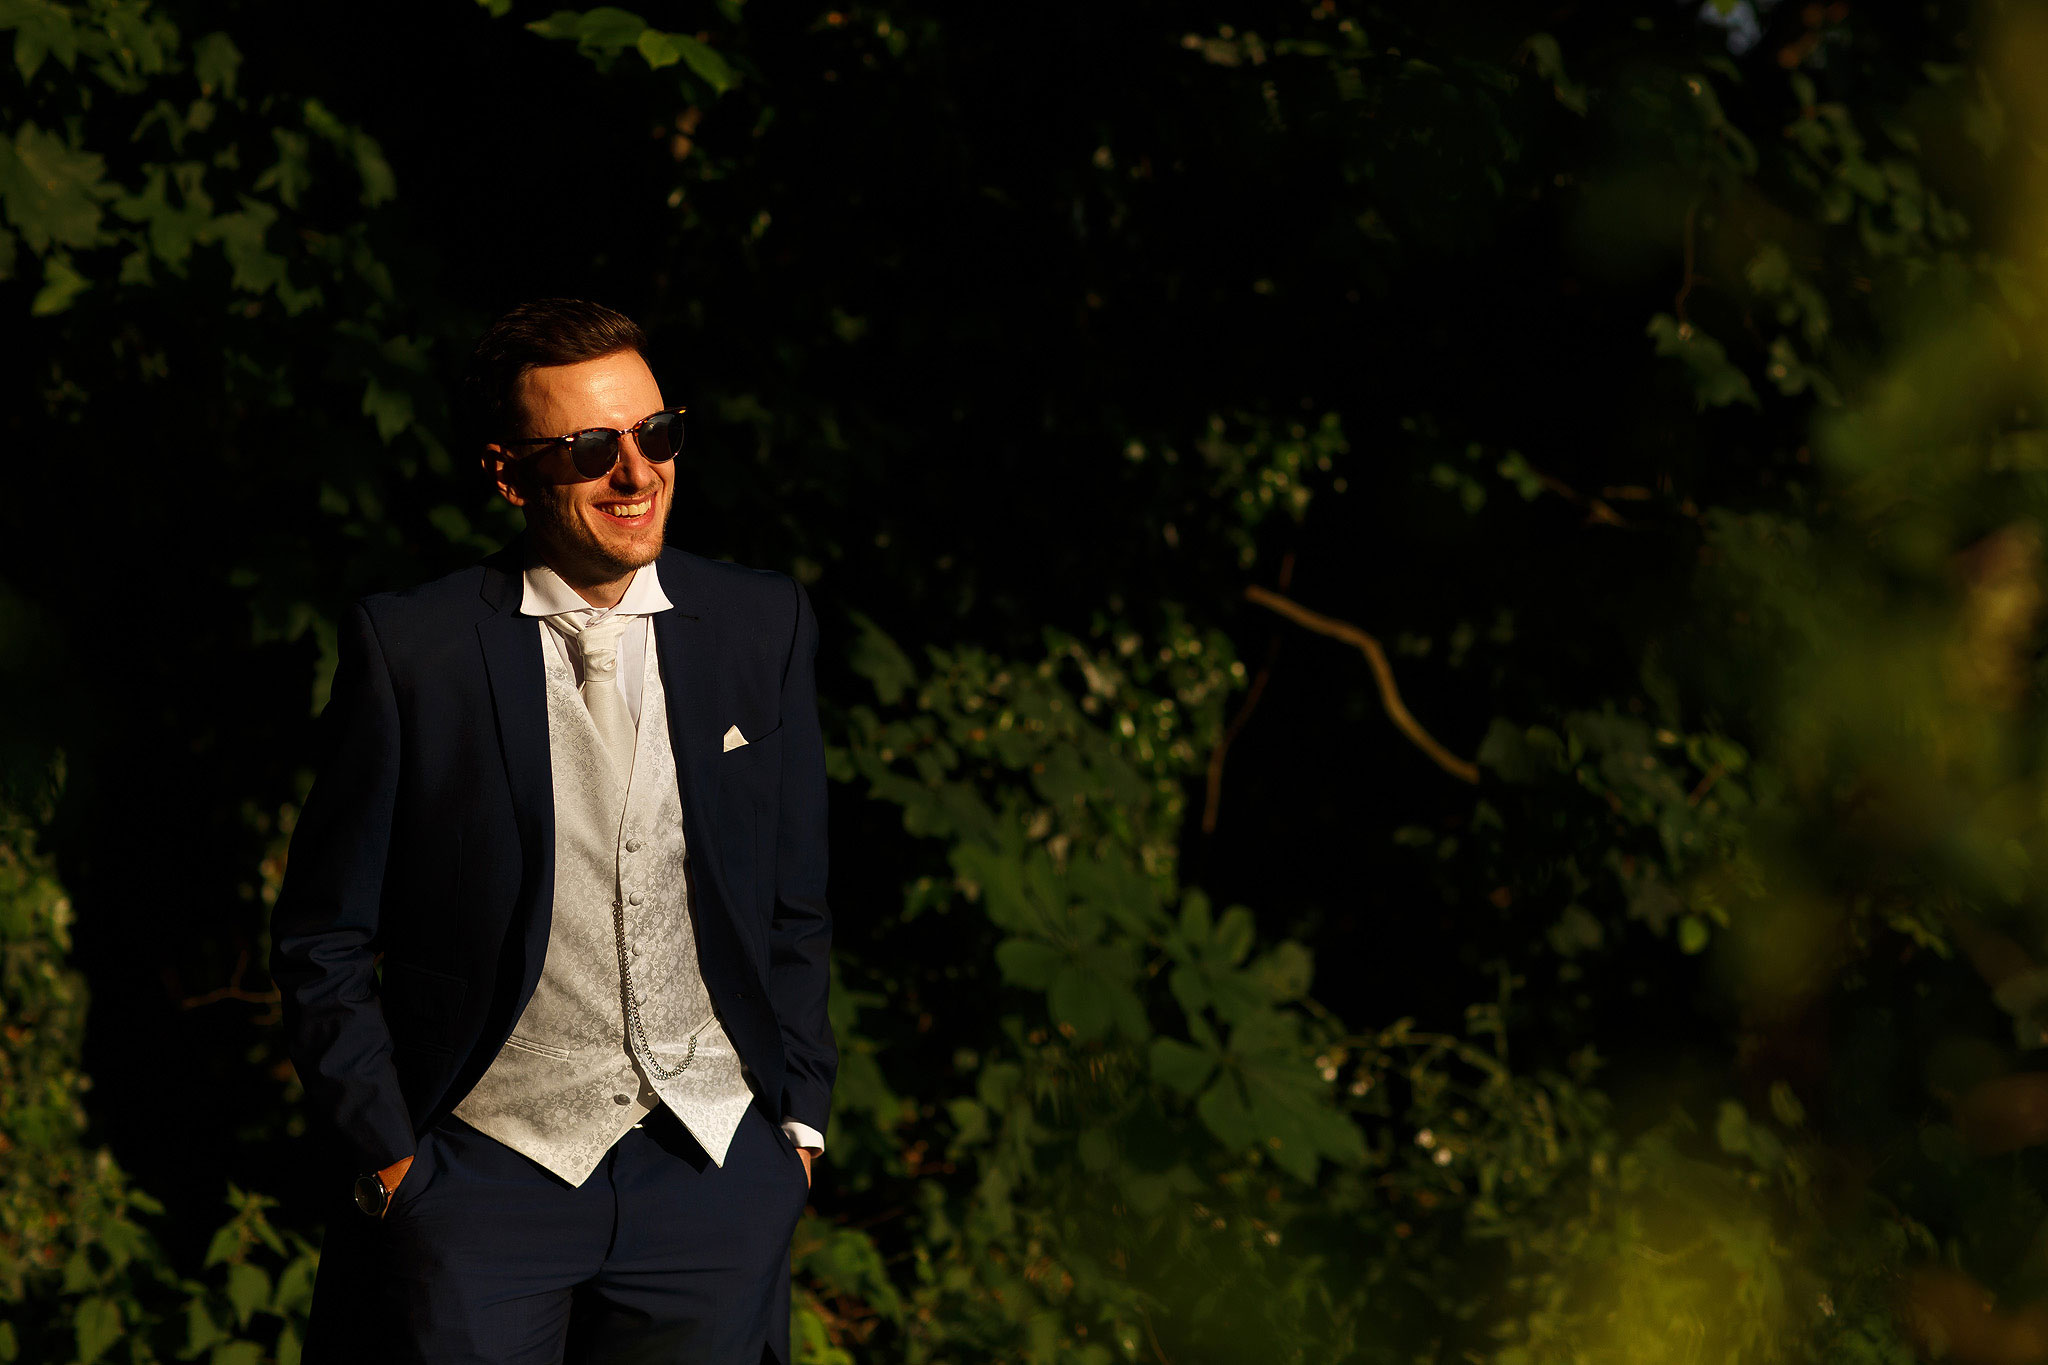 Groom wearing navy suit and cream waist coat and sunglasses during couple wedding day portraits - The Villa at Wrea Green Wedding Photography - Toni Darcy Photography